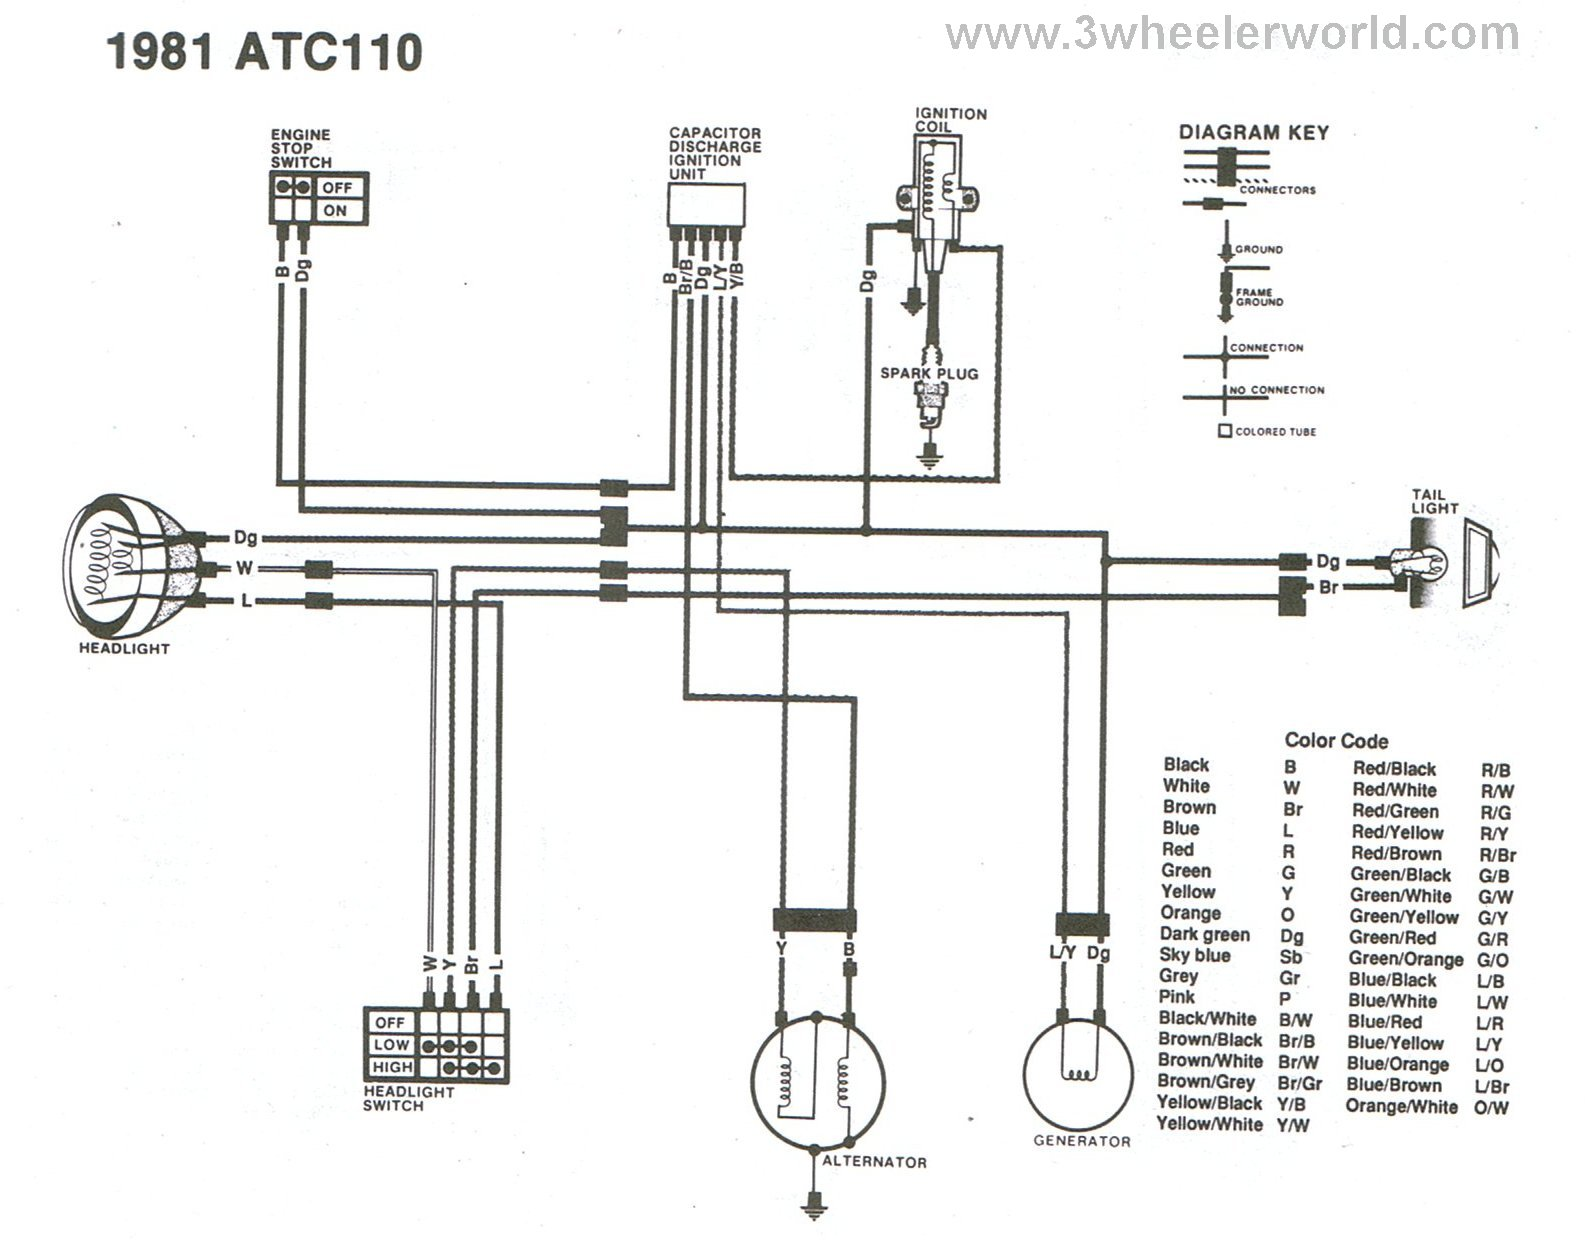 hight resolution of atc110 1981